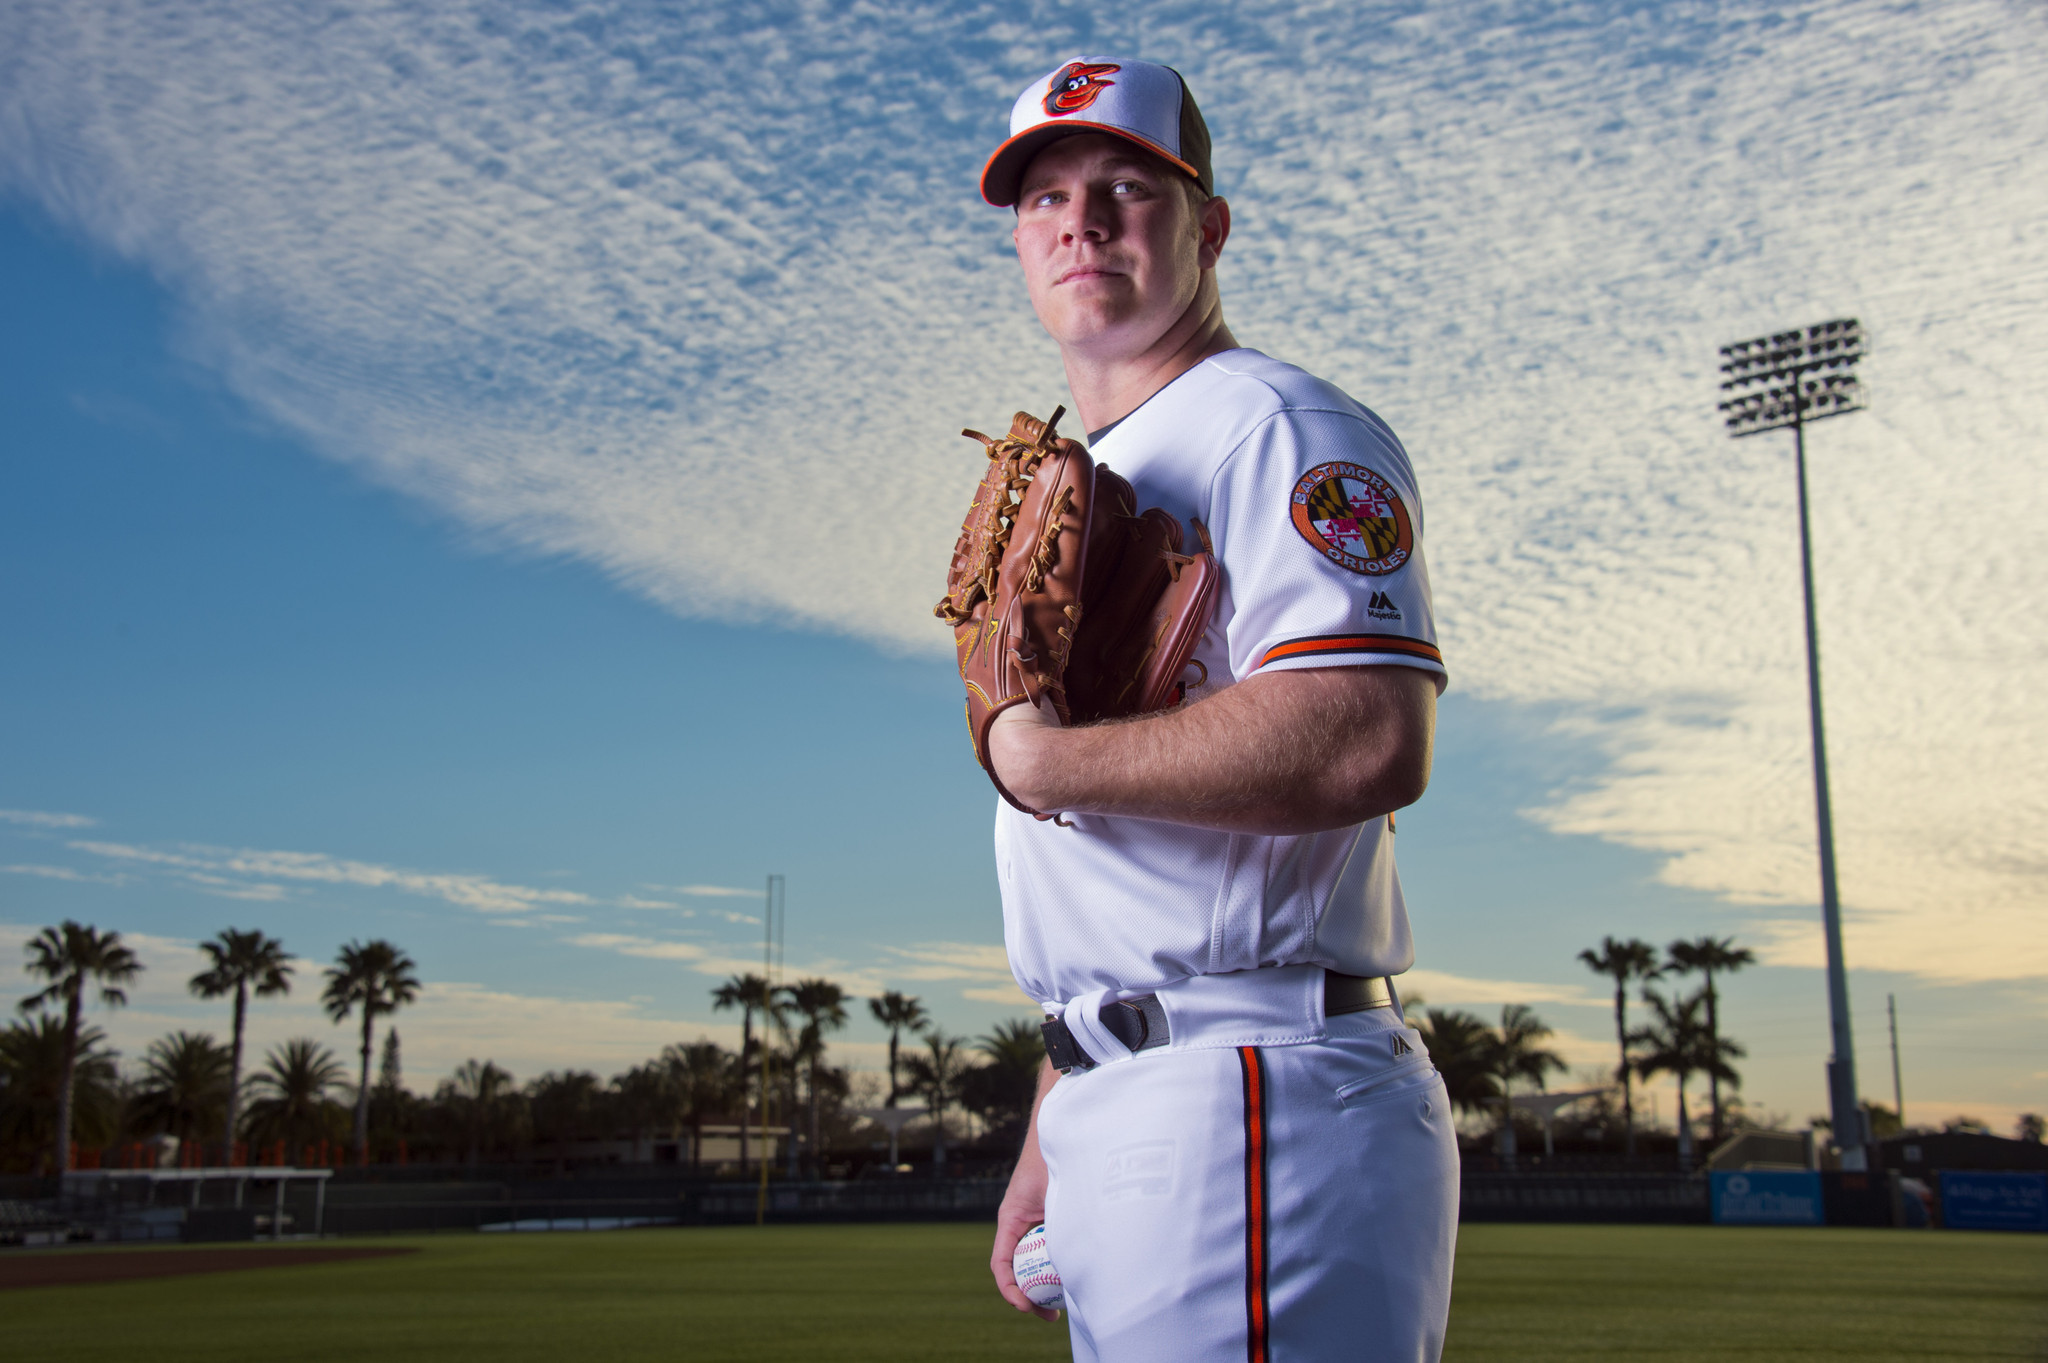 Bal-orioles-pitcher-dylan-bundy-continues-to-thrive-in-long-relief-20160626